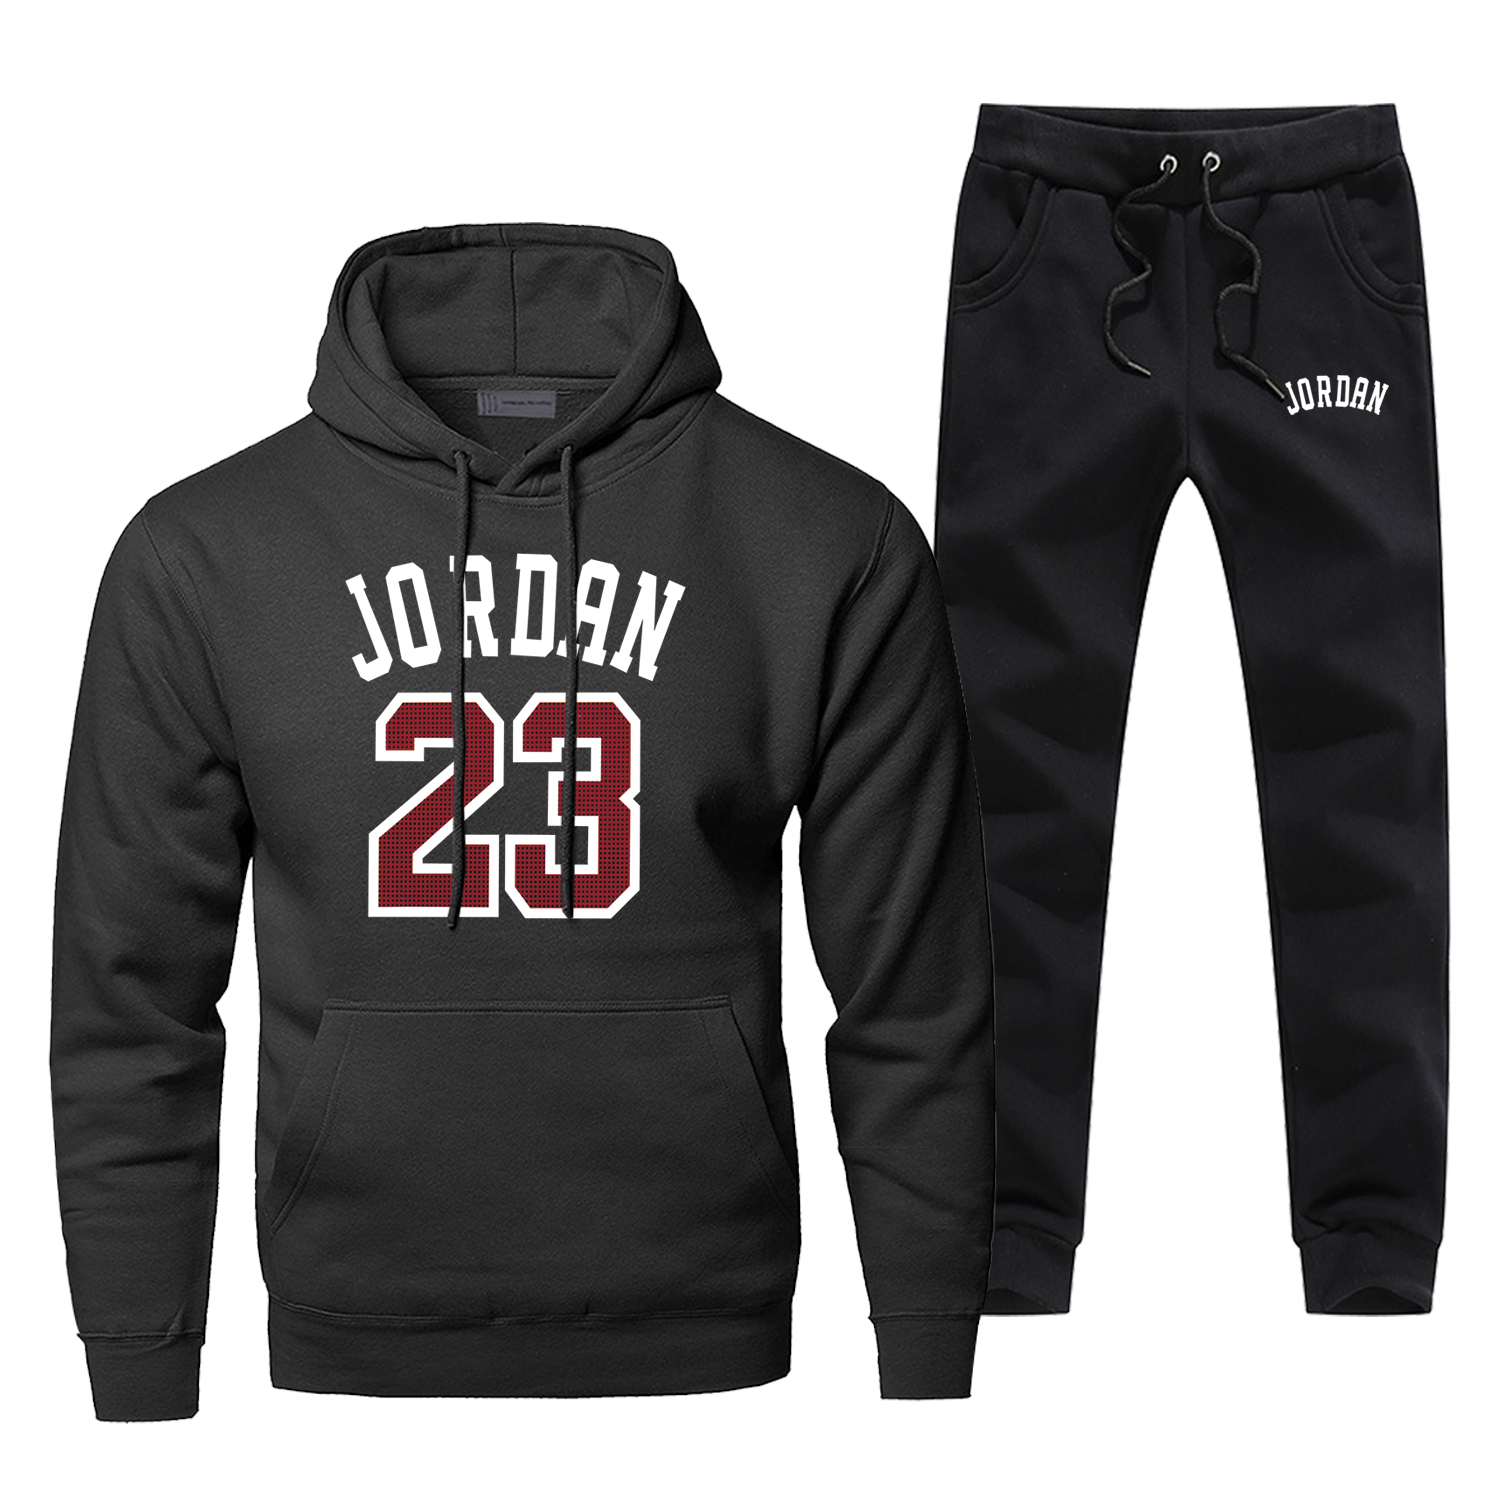 Jordan 23 Basketball Sports Hoodies Pants Suit Men Sets 2 Piece Set Tops Pant Sweatshirt Sweatpants Sportswear Autumn Tracksuit